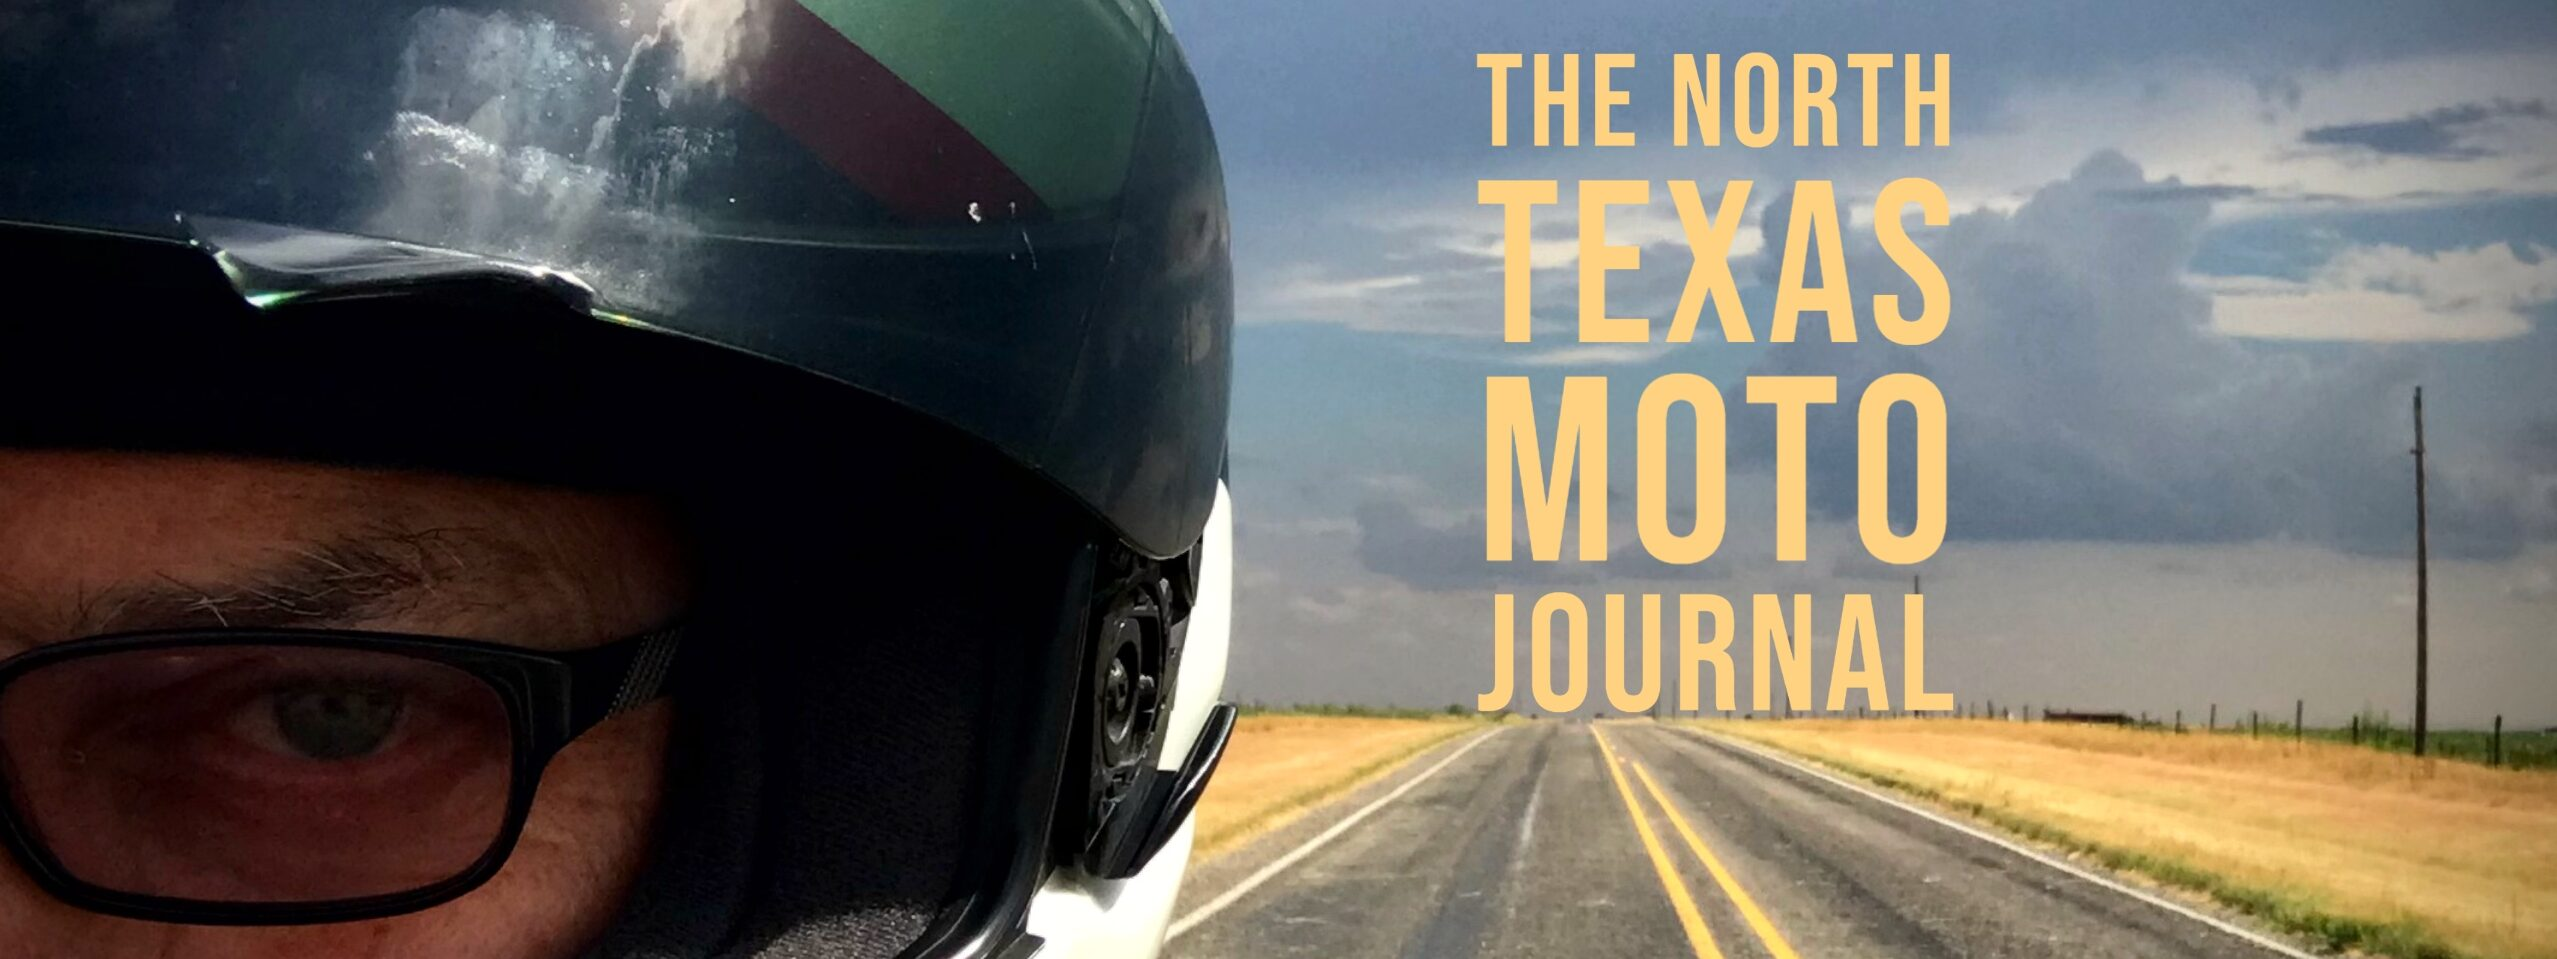 The North Texas Moto Journal